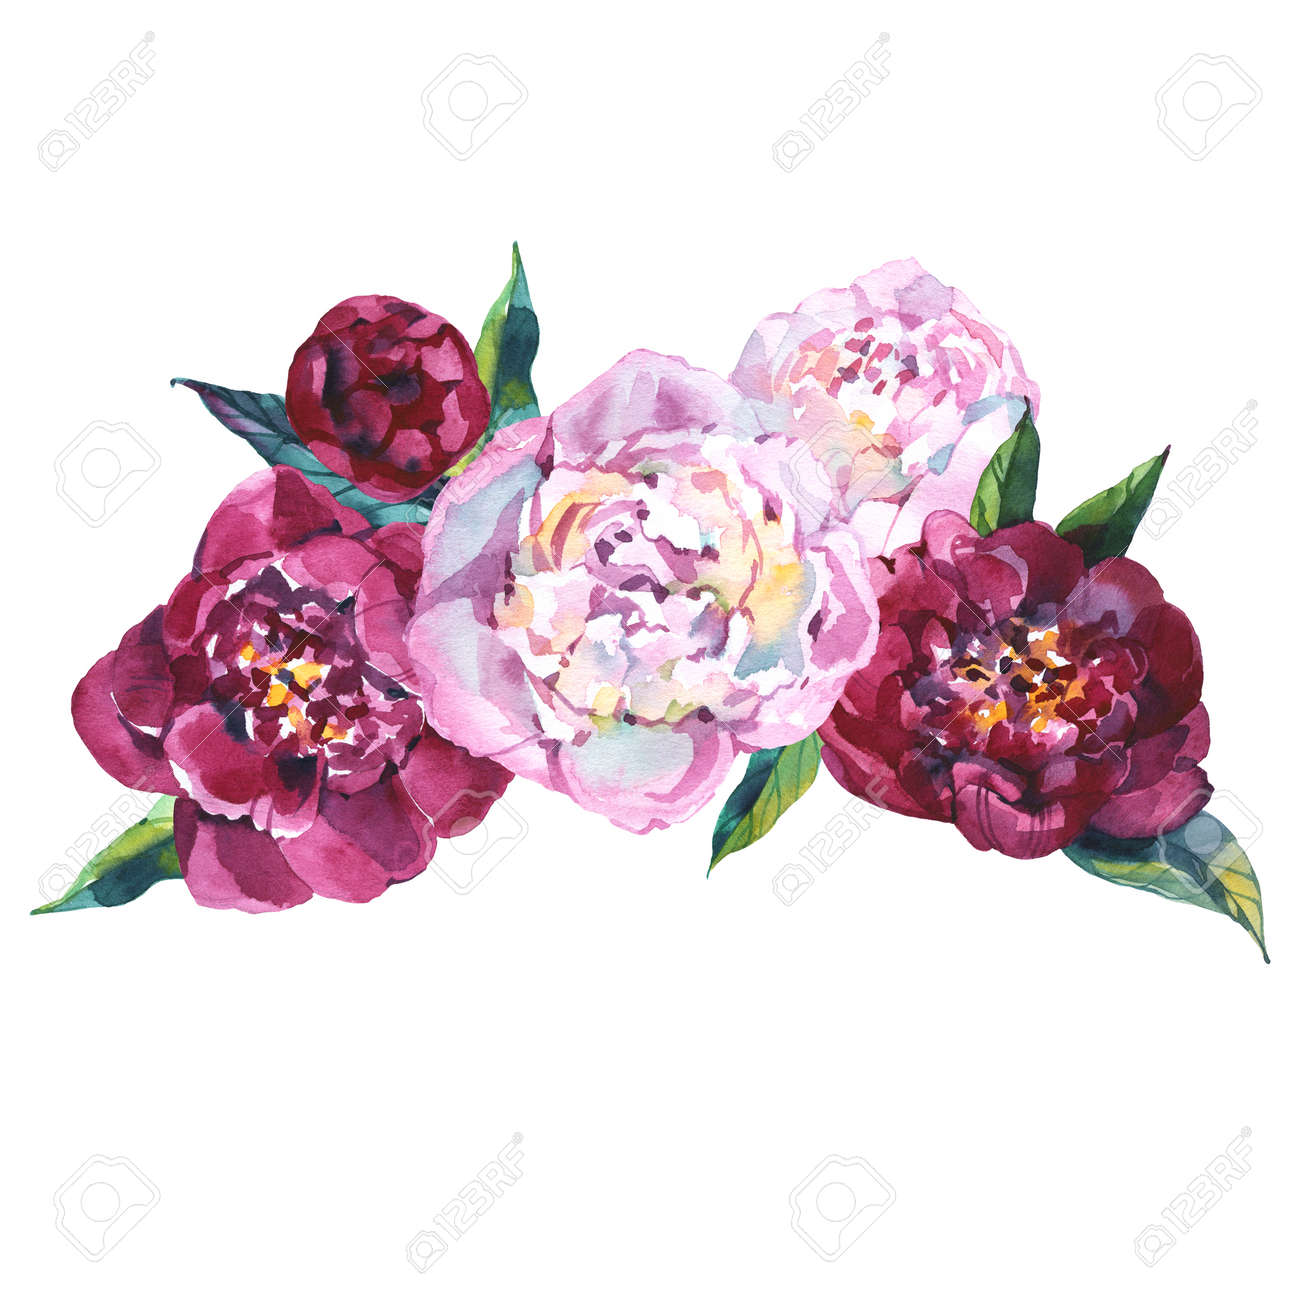 Watercolor Boho Burgundy Red White Floral Round Bouquet Flowers Stock Photo Picture And Royalty Free Image Image 152326012